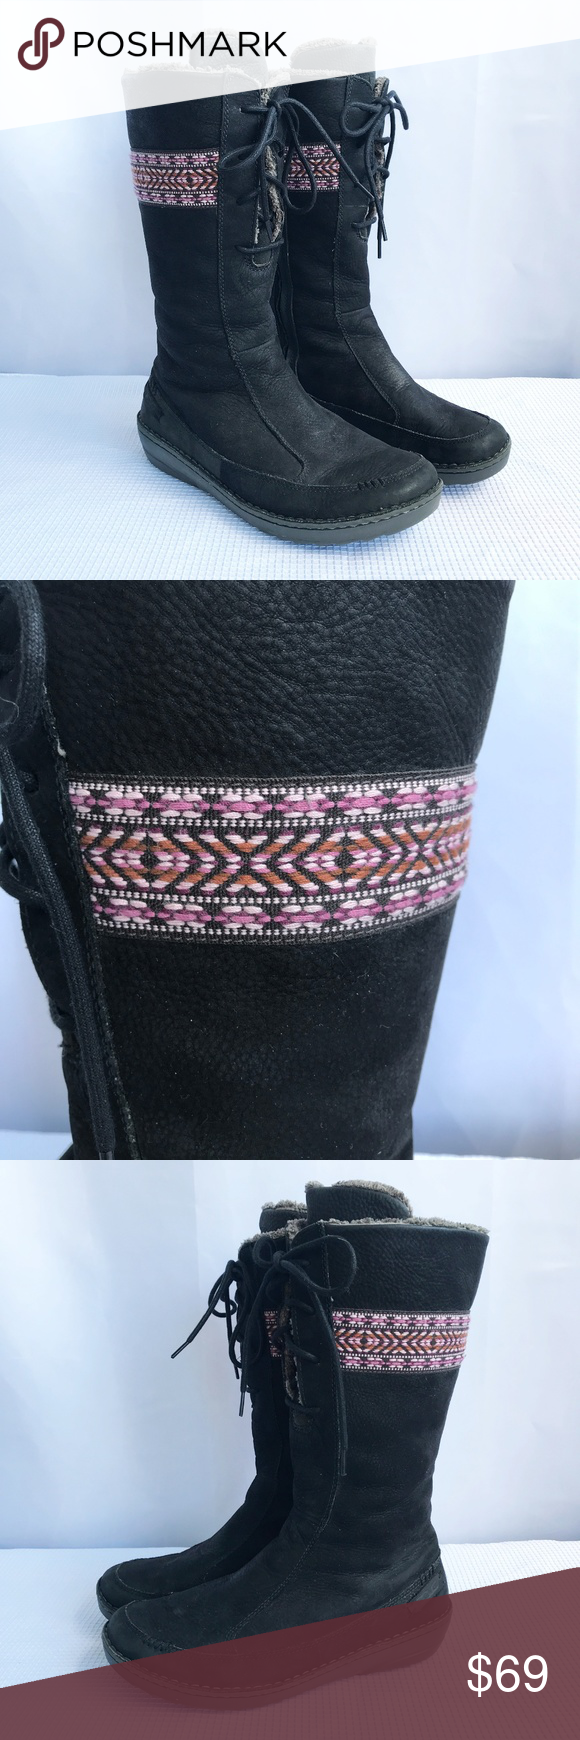 5f02cba05c3a Teva Kiru Boots Black Leather Faux Fur Lined Sz8 Teva Kiru Boots - Pink  Embroidery on top Size  Size  US 8